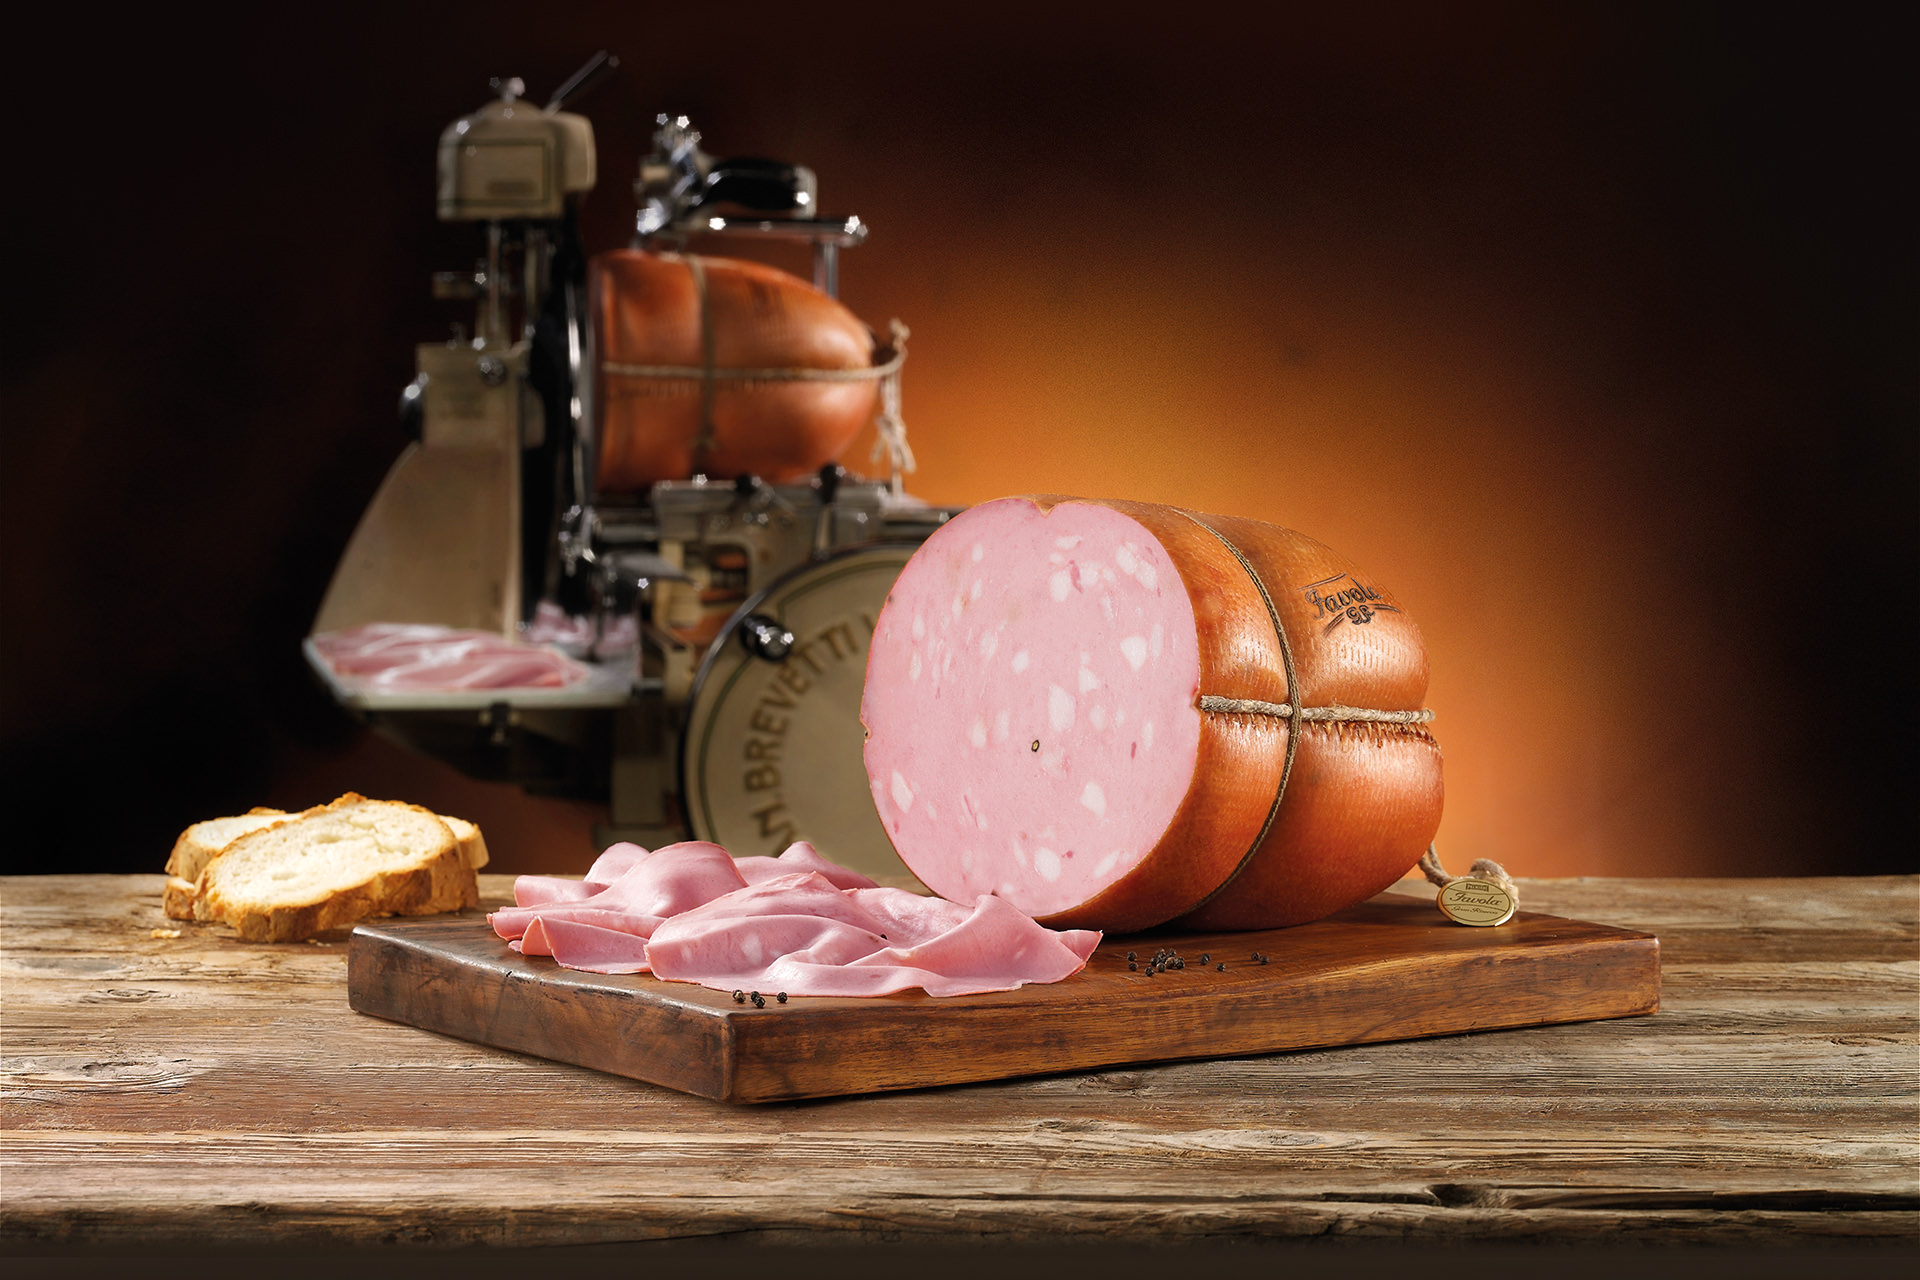 Favola is the one and only mortadella of the world stuffed and cooked in the natural pork rind.